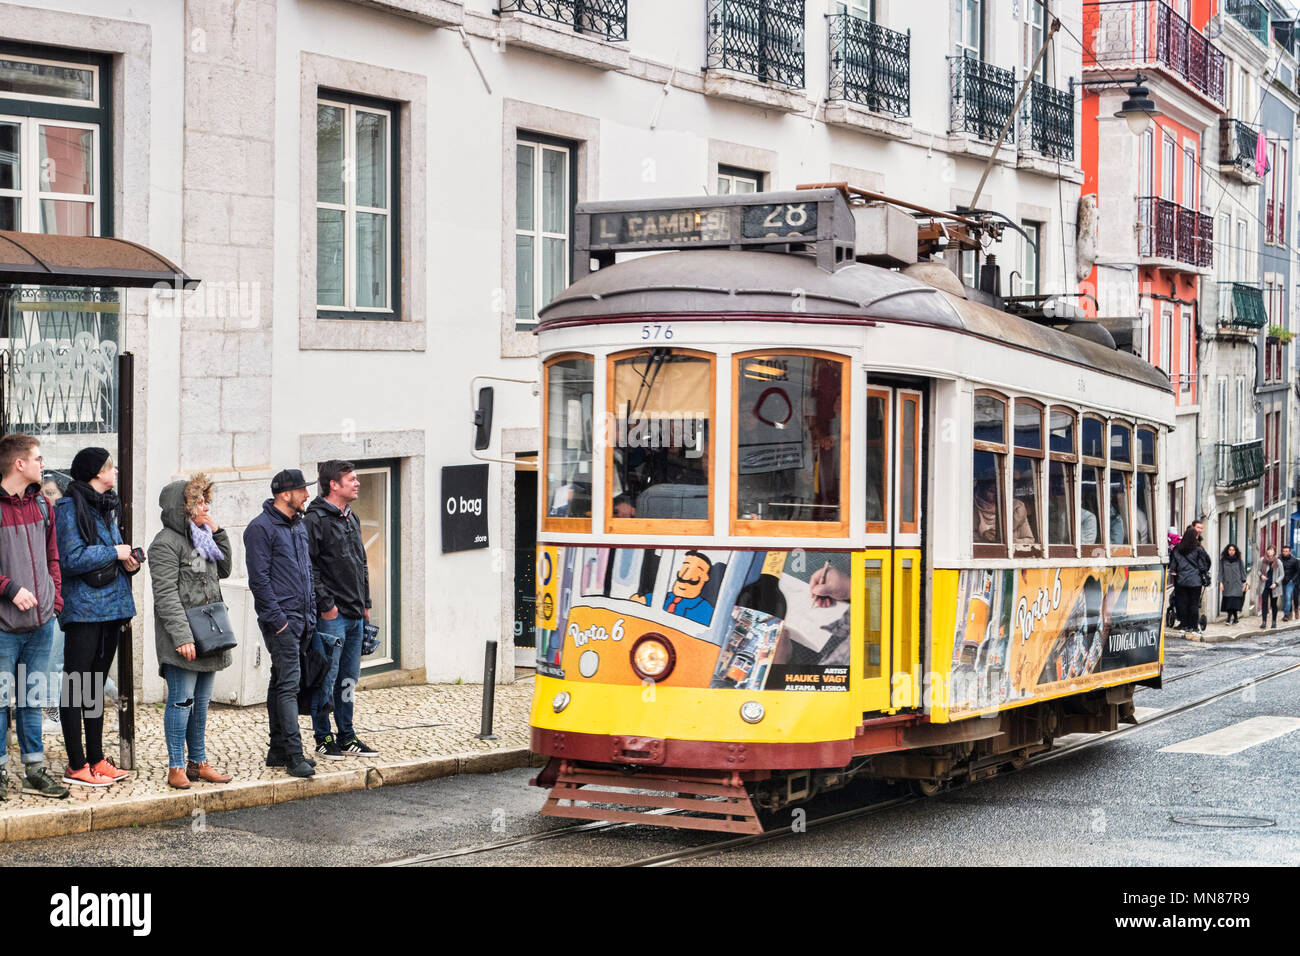 6 March 2018: Lisbon, Portugal - The famous 28 tram on its route in the central city. - Stock Image